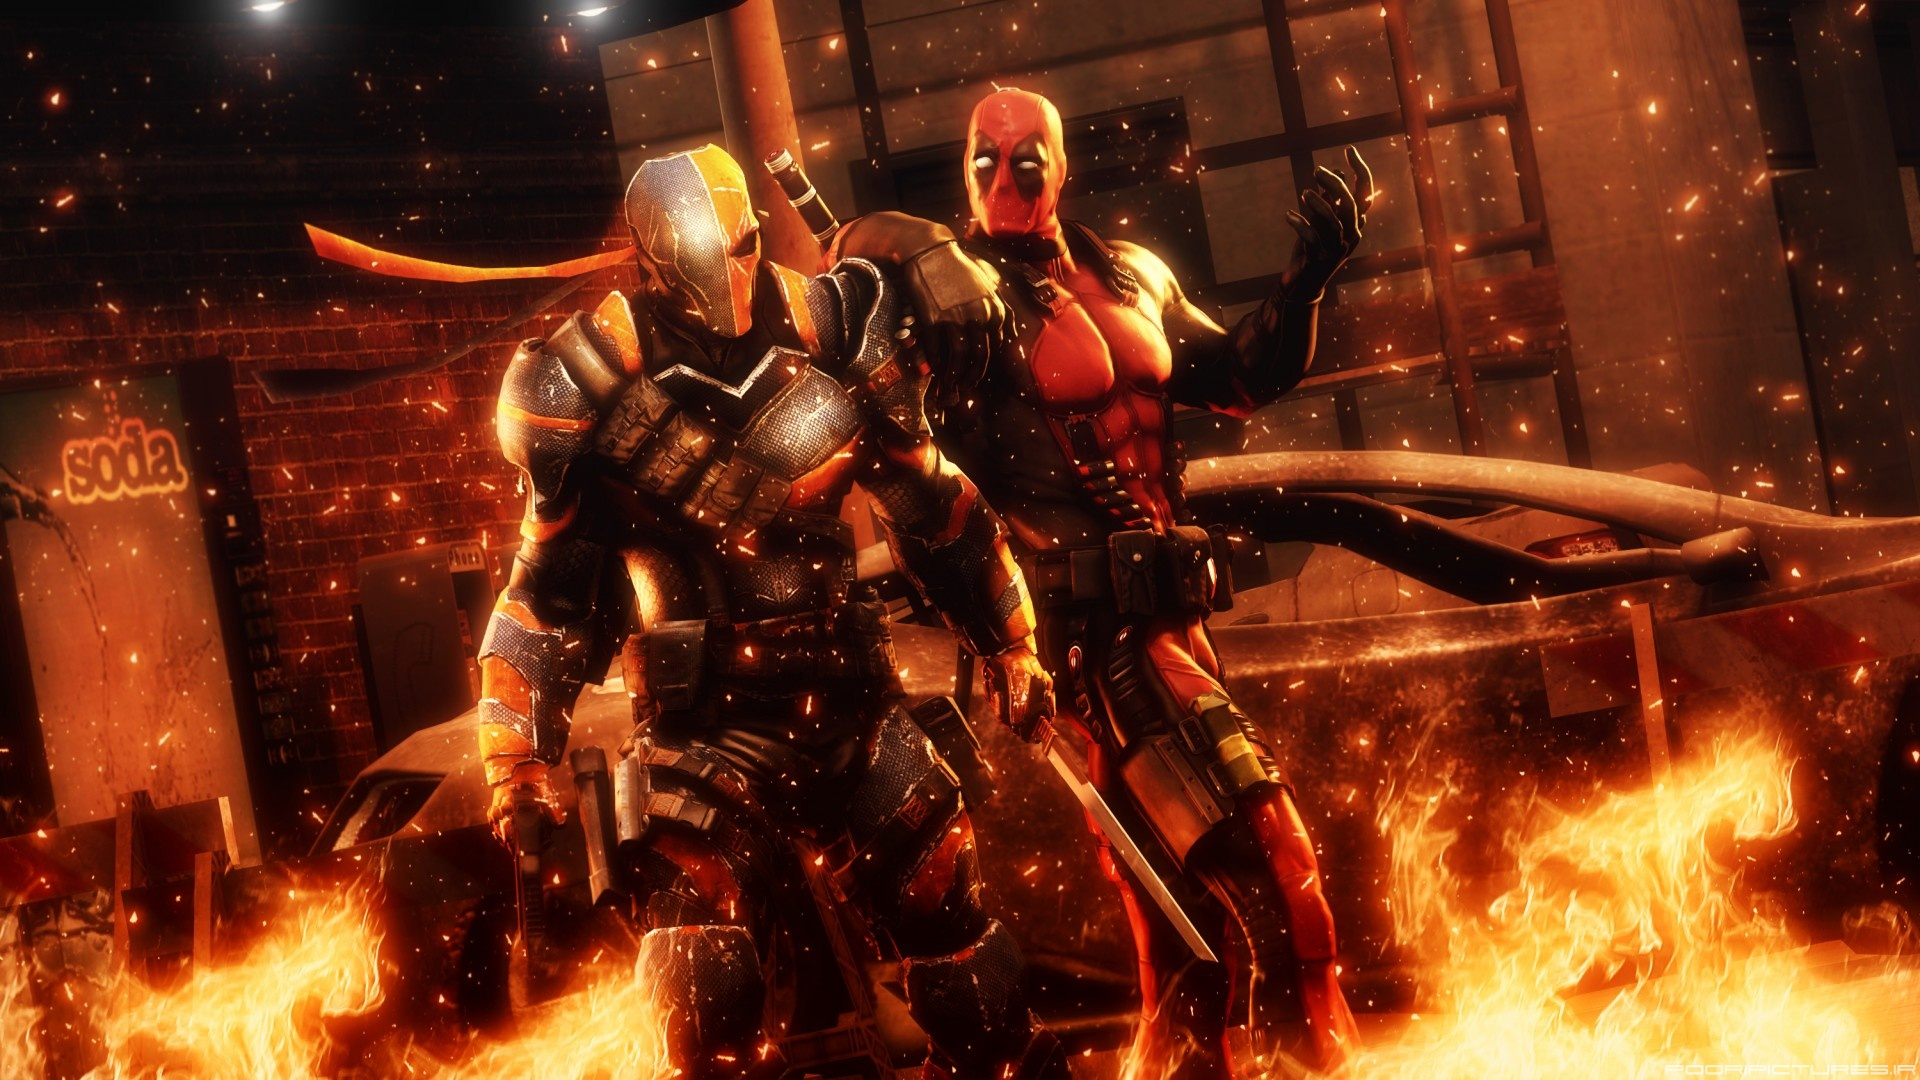 Deadpool Vs Deathstroke HD Wallpaper